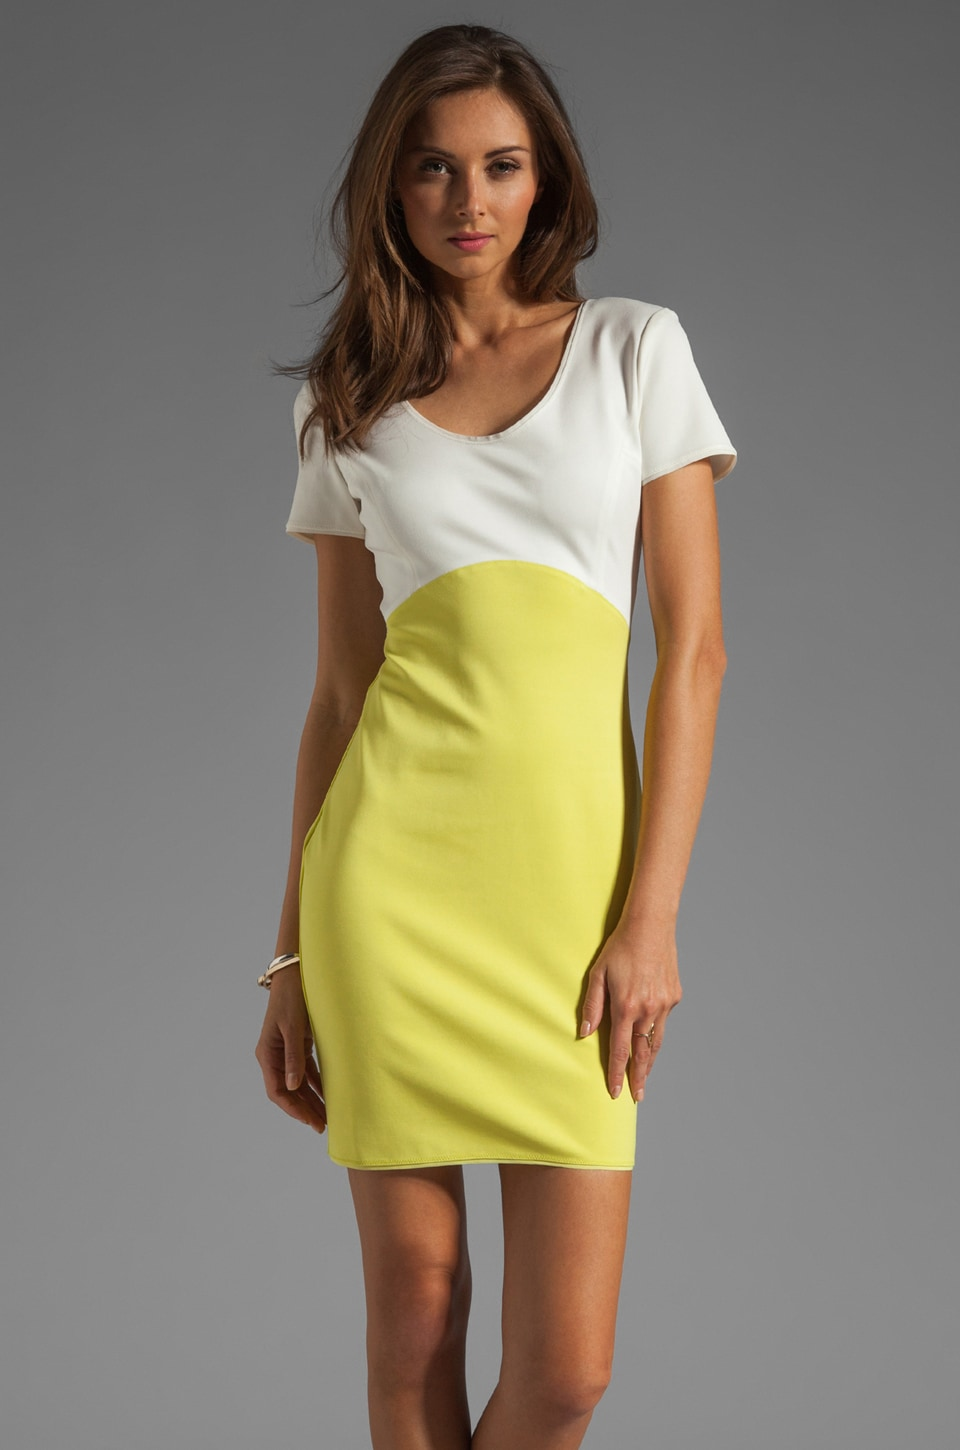 Halston Heritage Short Sleeve Colorblock Ponte Dress in Off-White/Lemonade